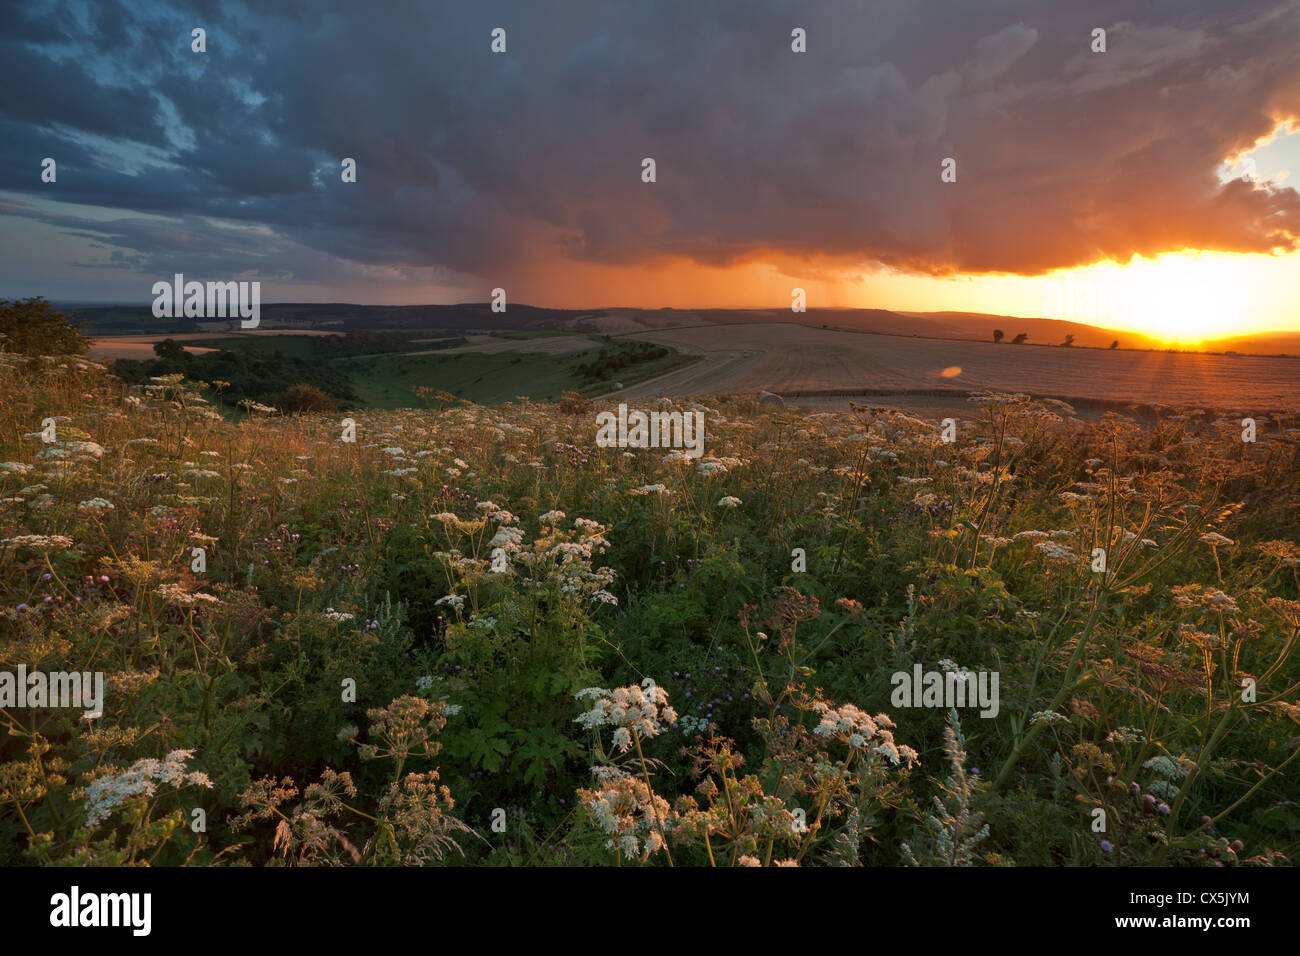 Summer storm on the South Downs, West Sussex, England. - Stock Image